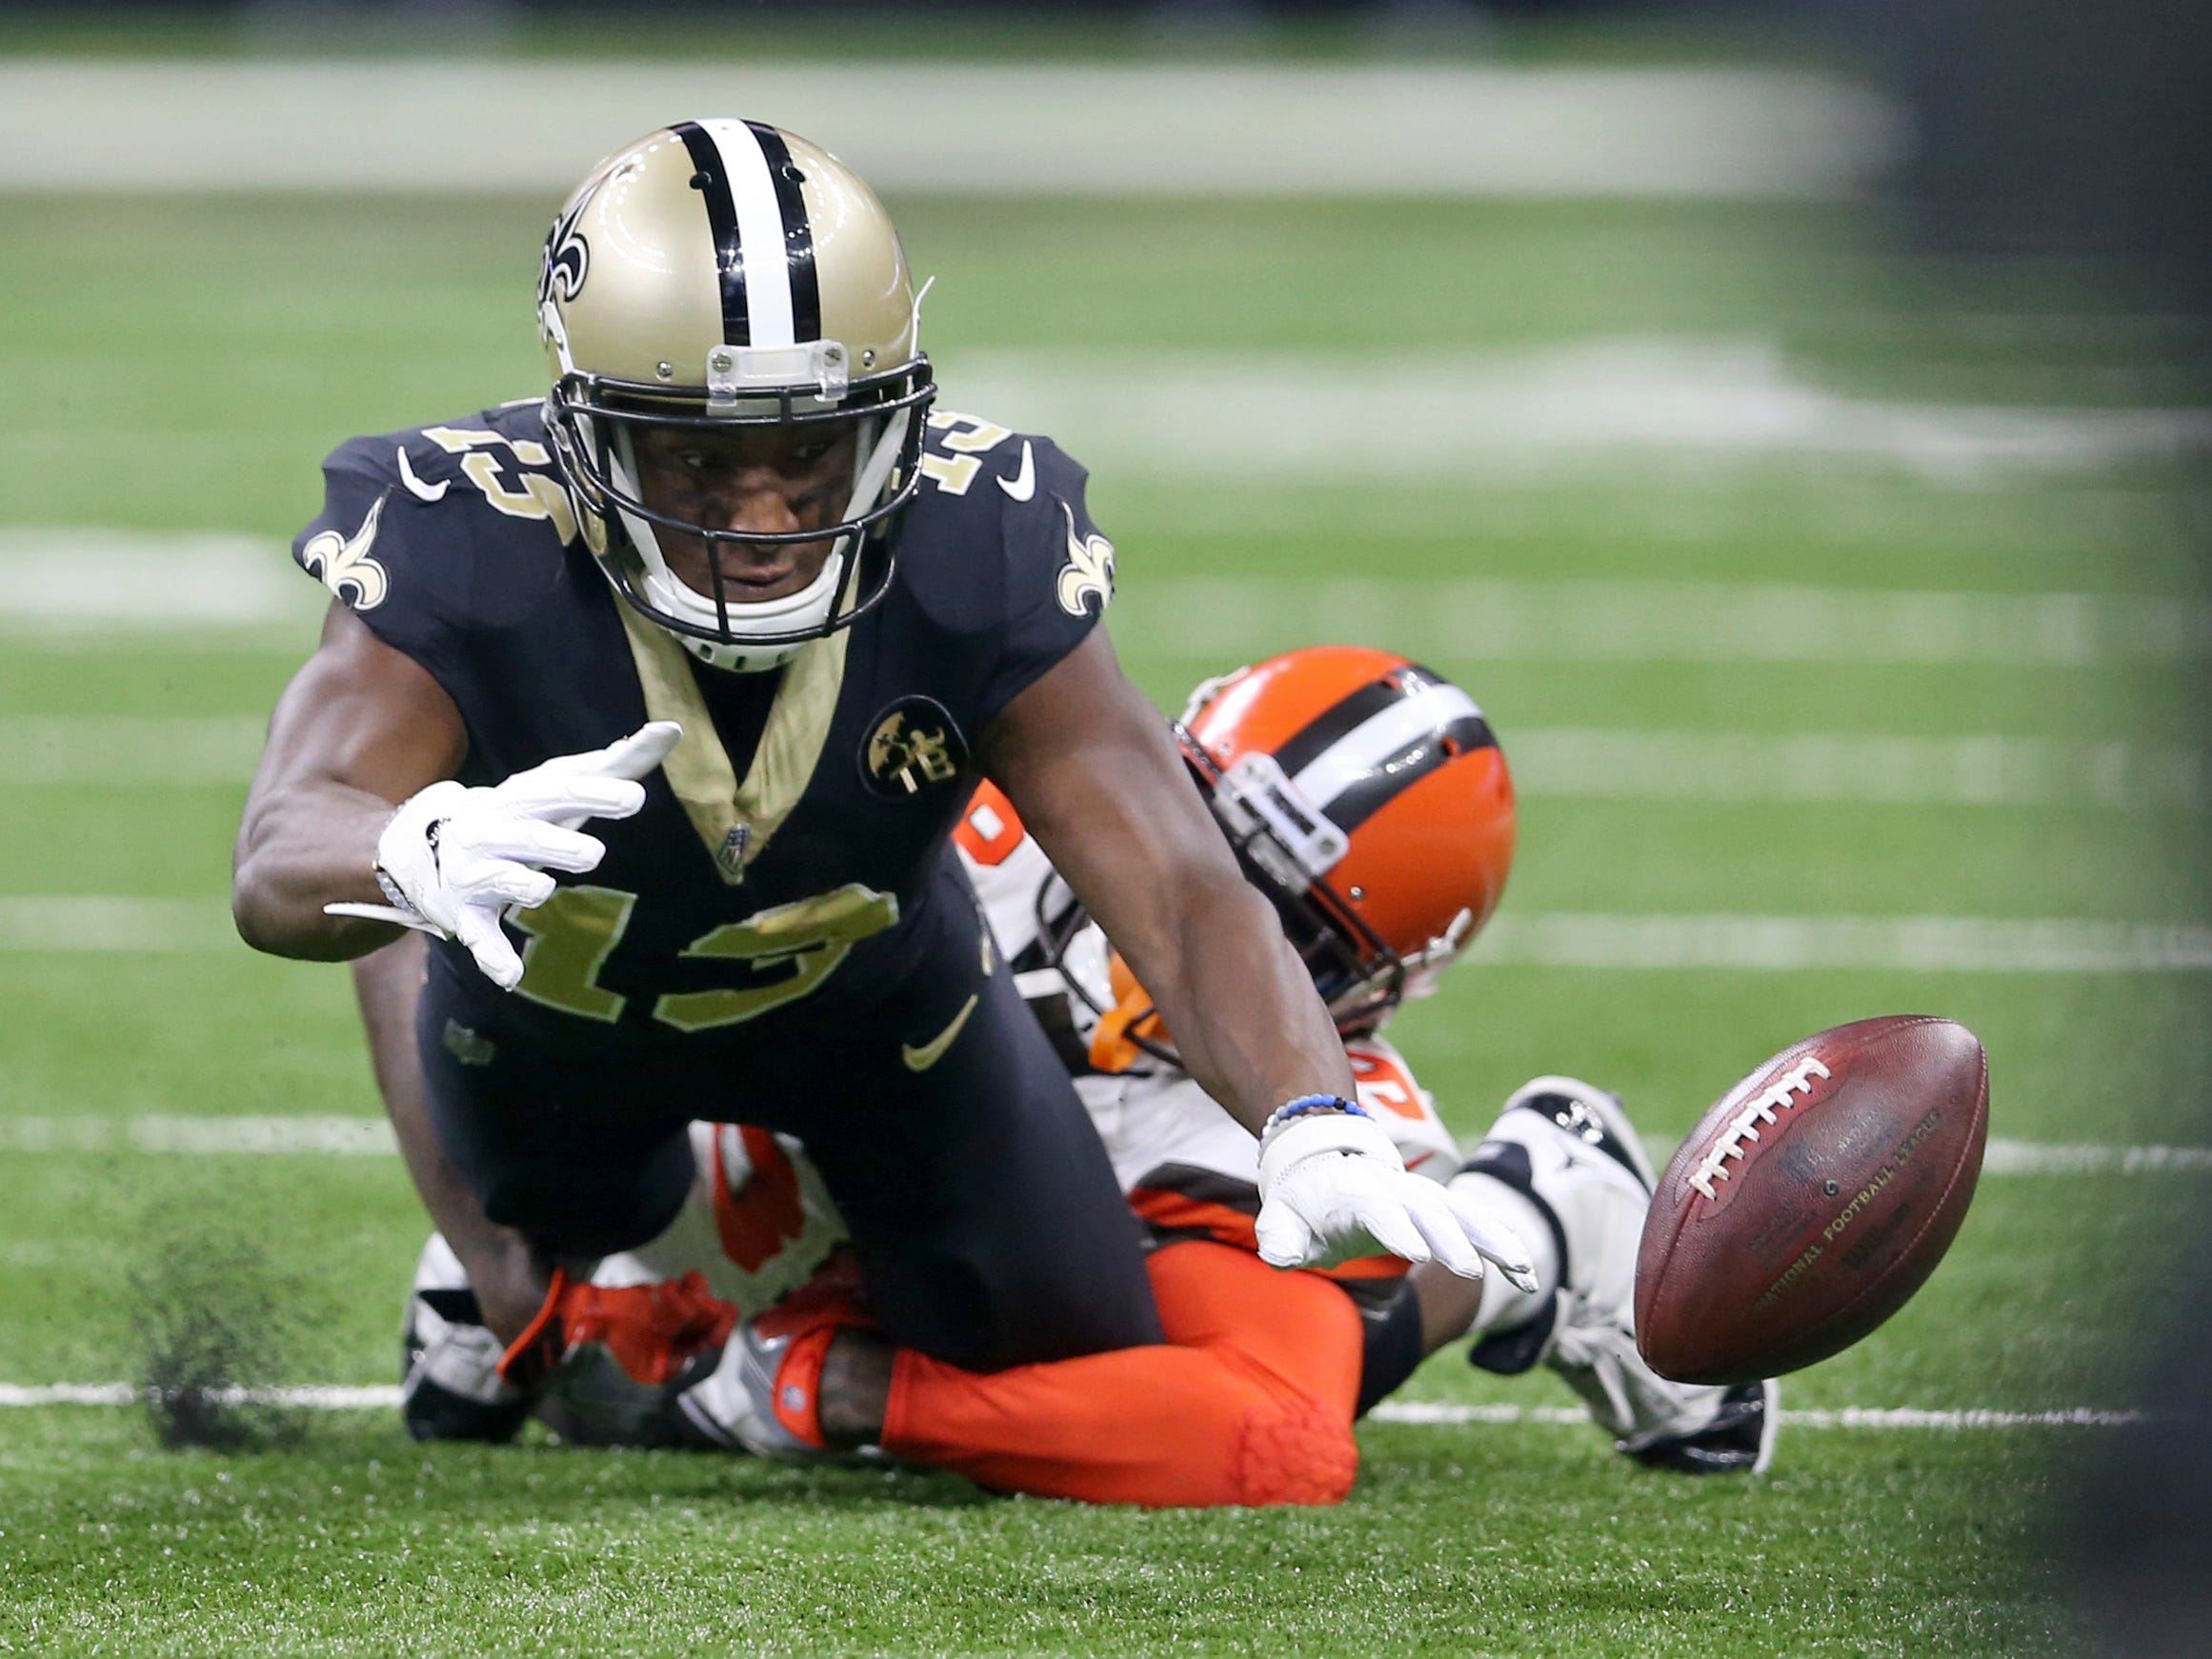 New Orleans Saints wide receiver Michael Thomas fumbles the ball after being hit by Cleveland Browns defensive back Terrance Mitchell in the first quarter at Mercedes-Benz Superdome.